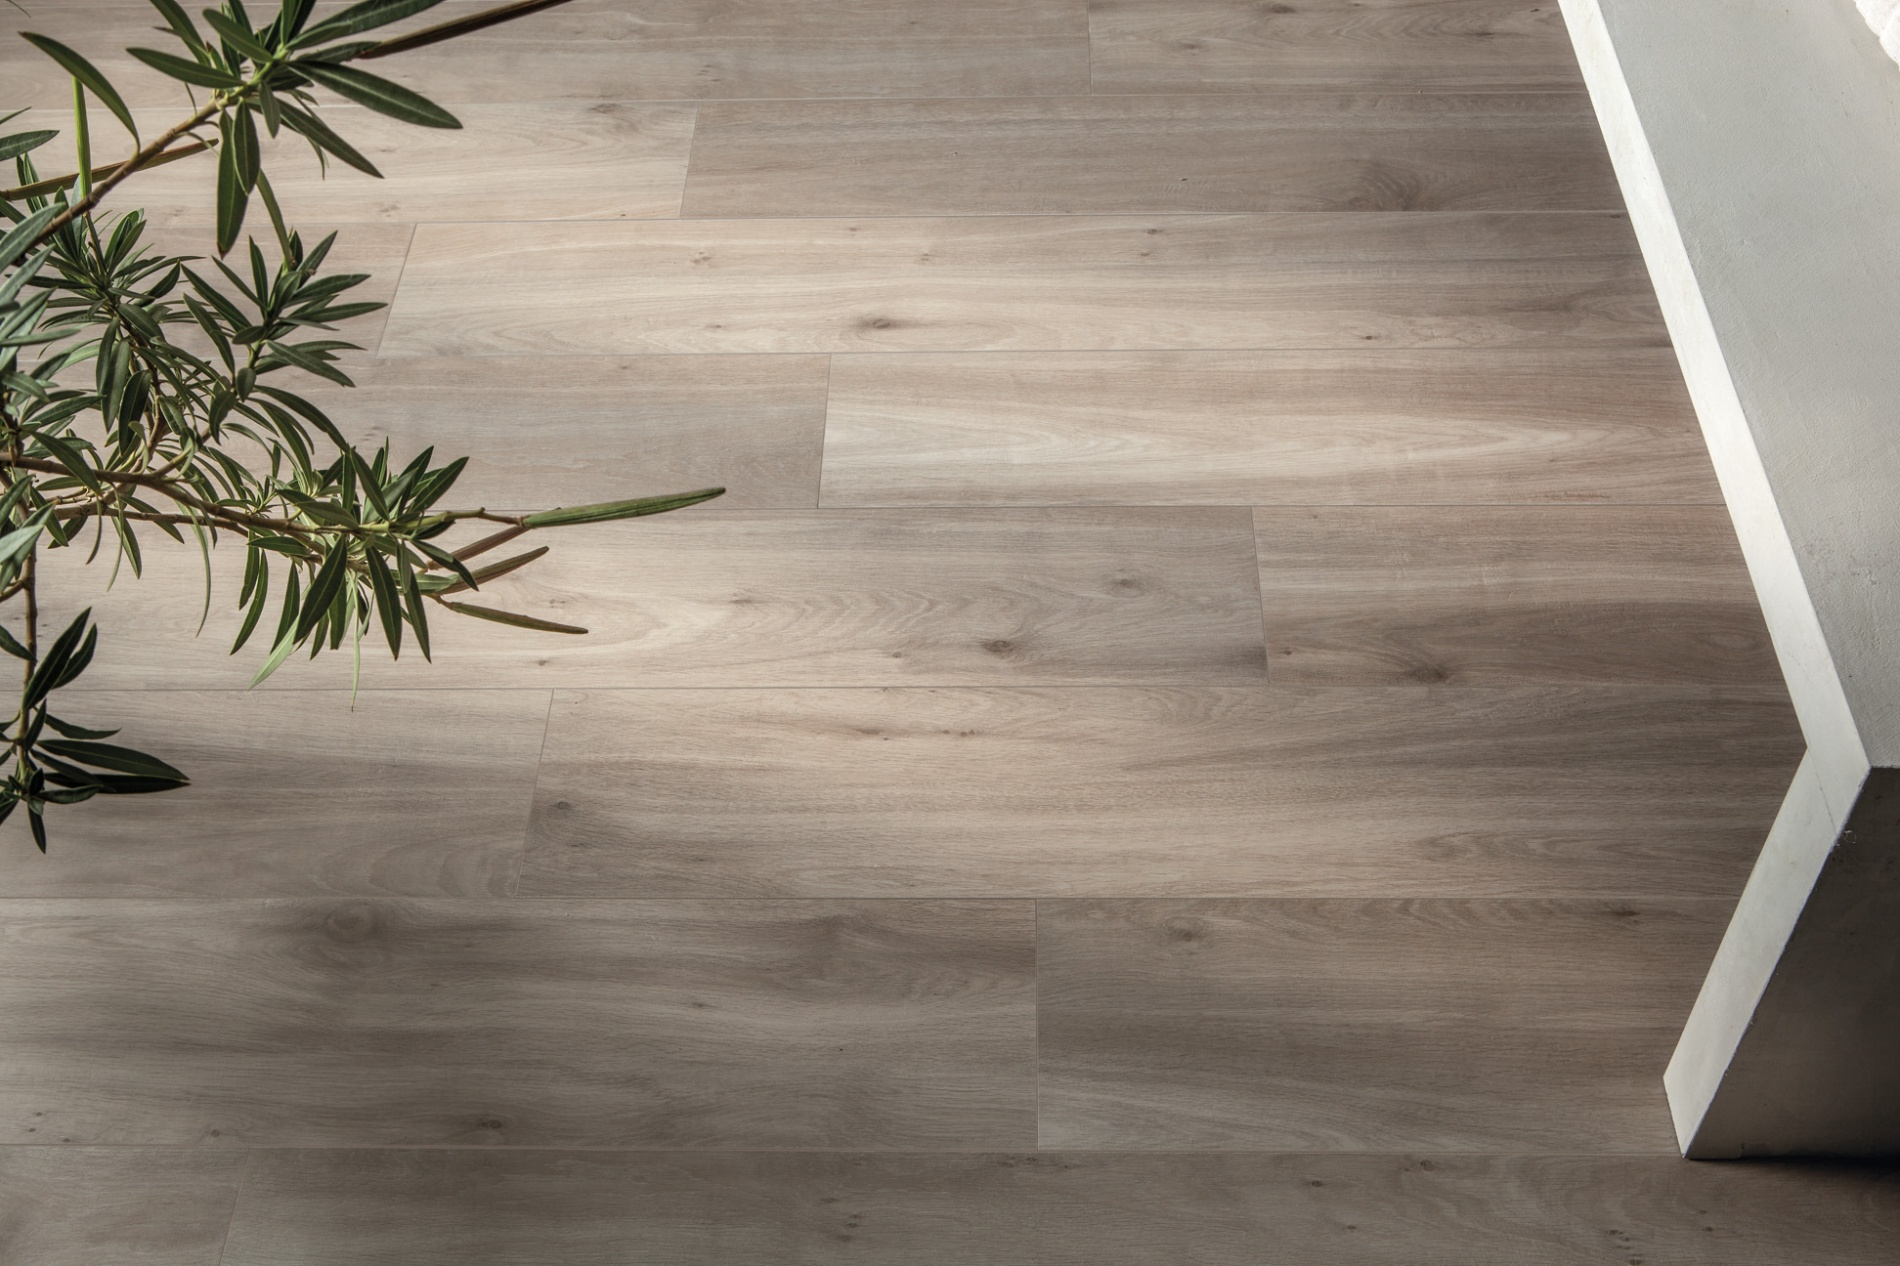 porcelain tile images: Casa range high quality photo